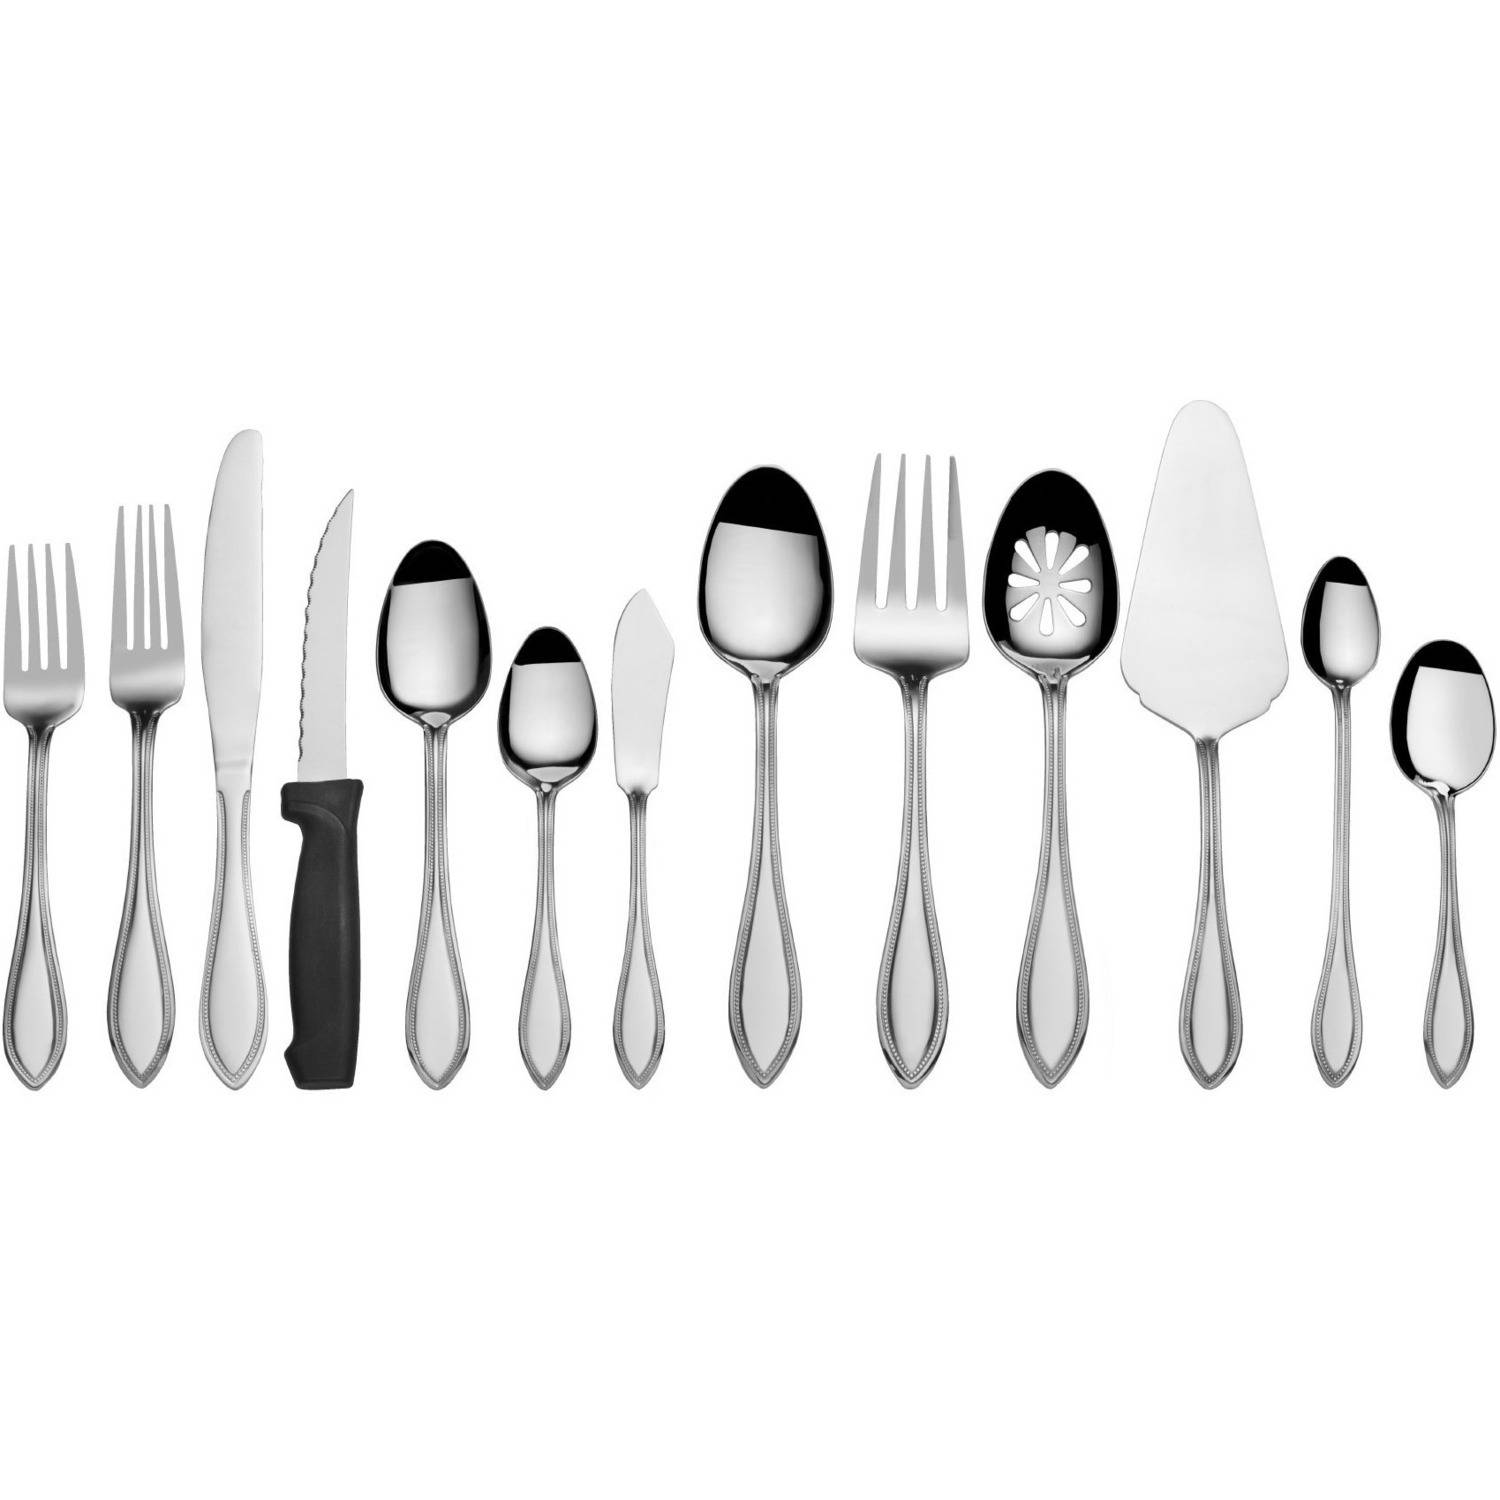 International Silver American Bead 102-Piece Stainless Flatware Set by Lifetime Brands